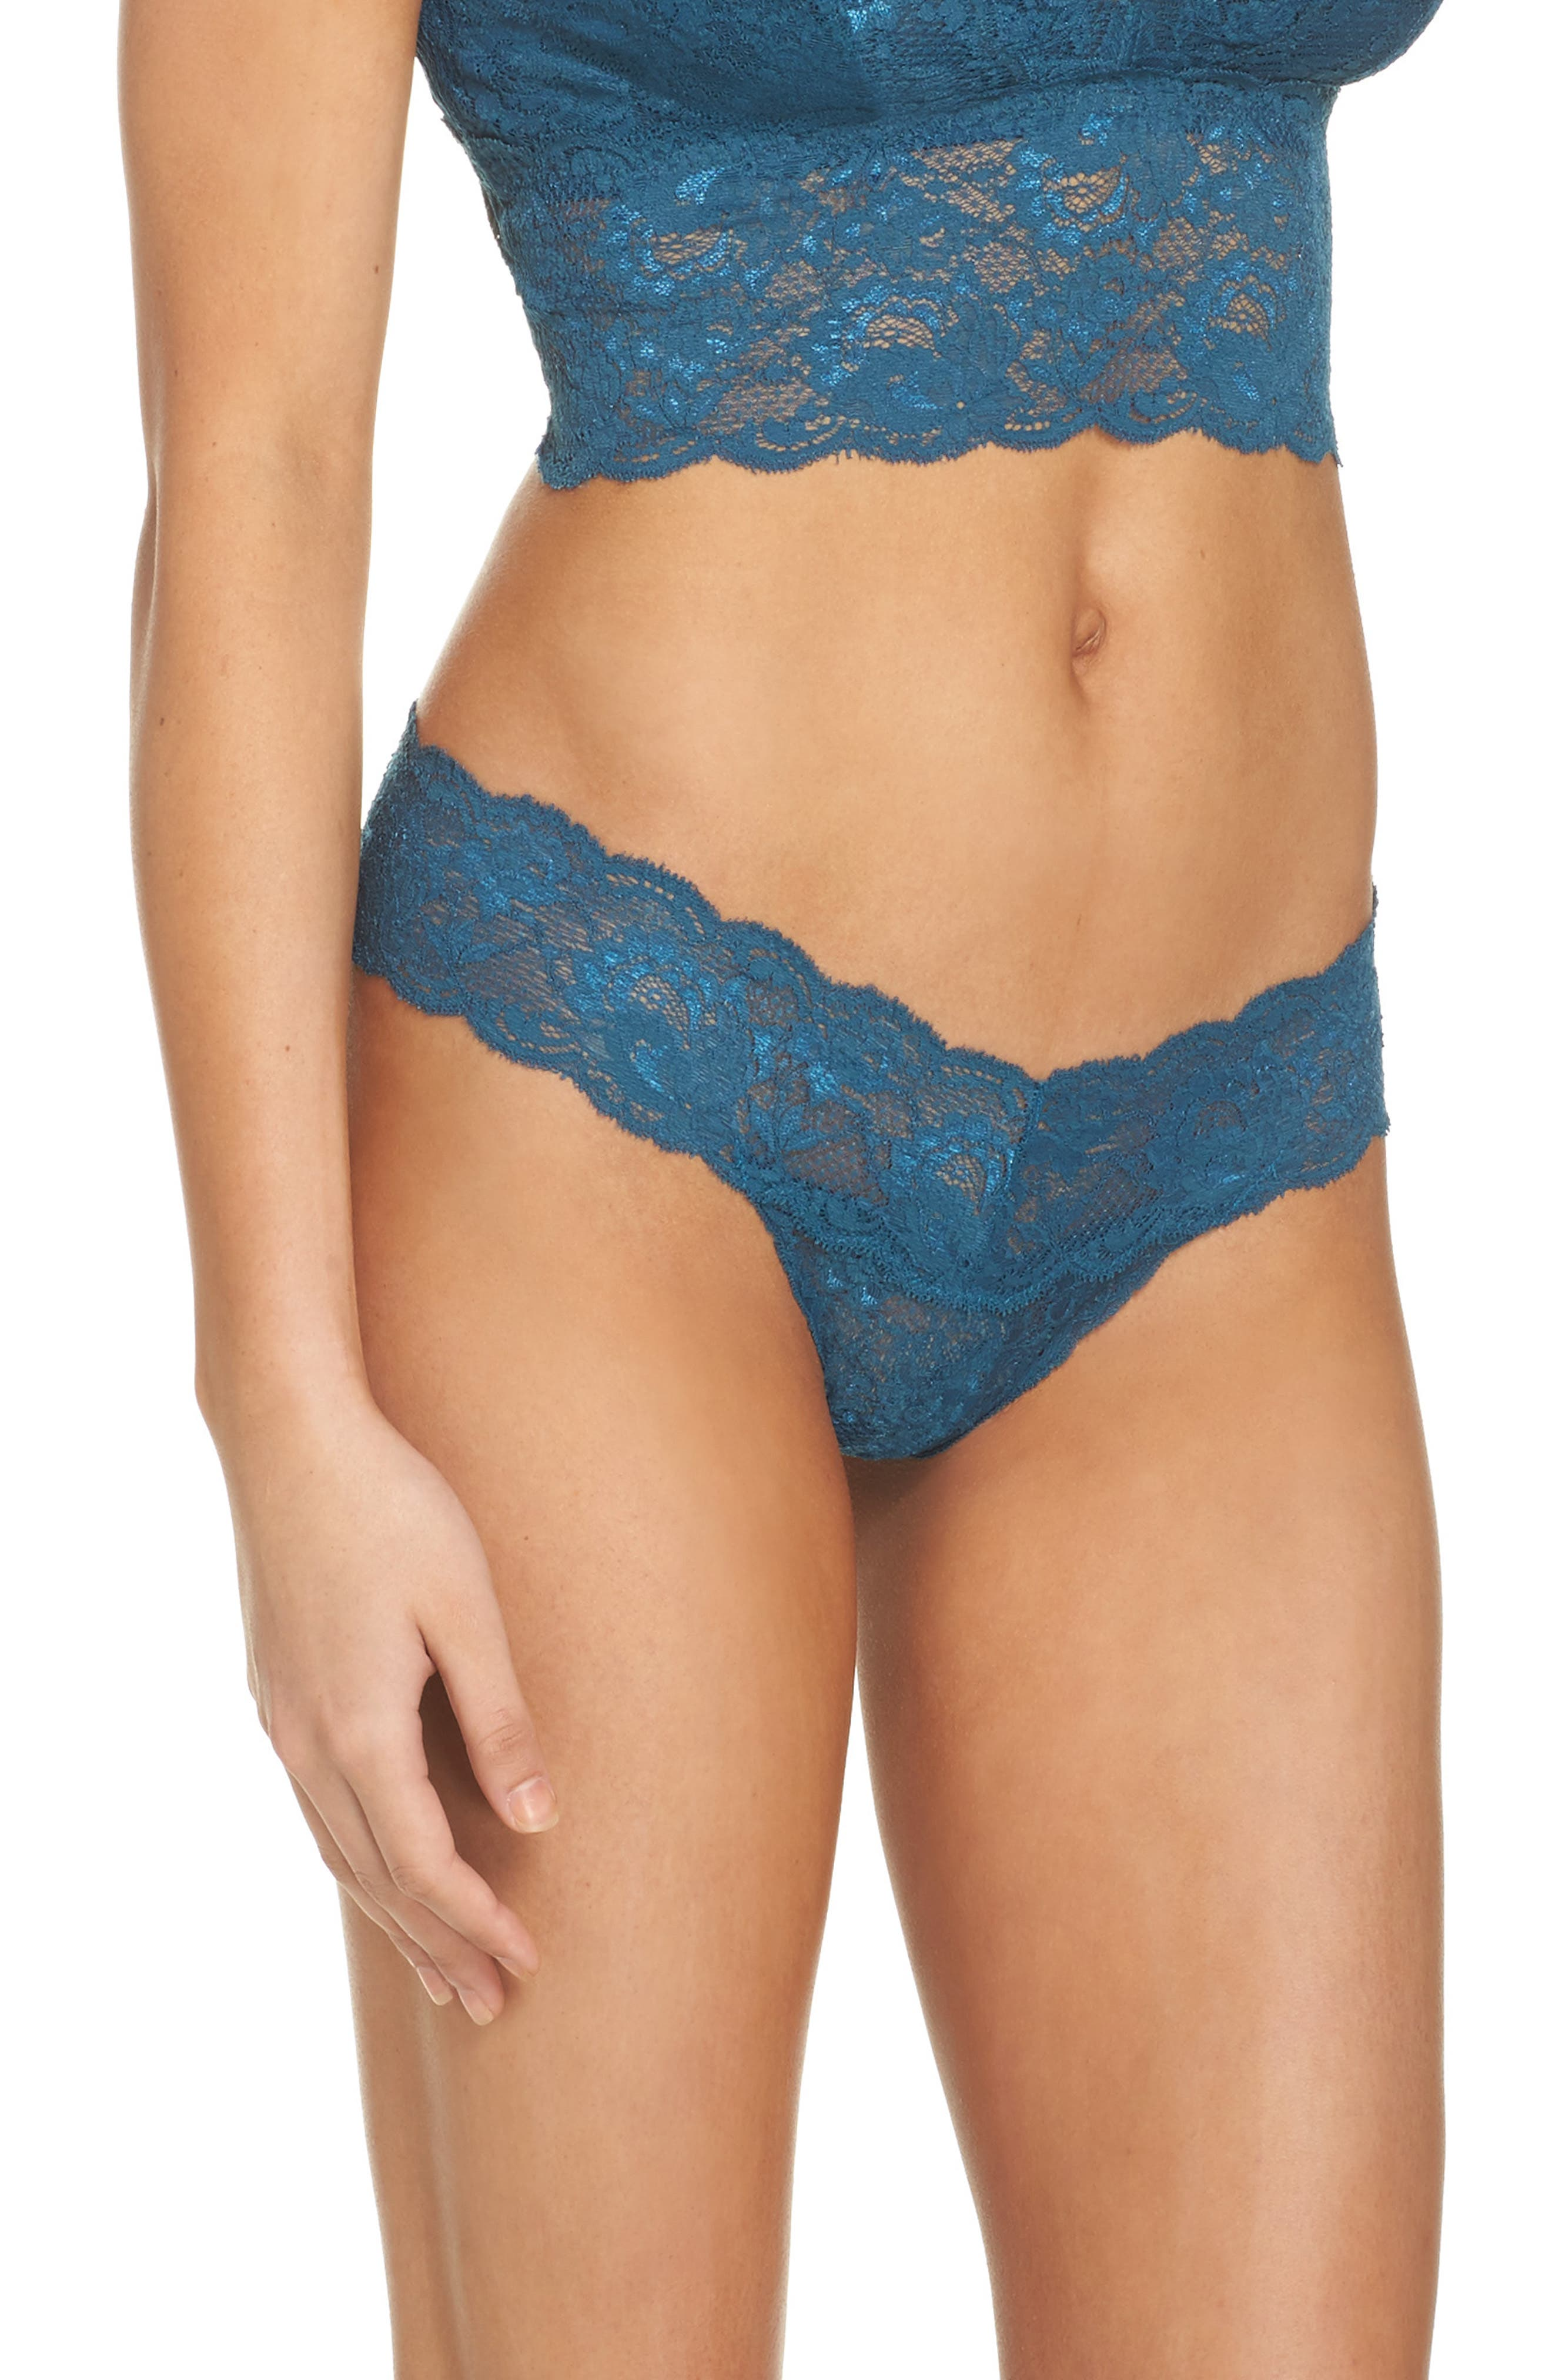 'Never Say Never Cutie' Thong,                             Alternate thumbnail 256, color,